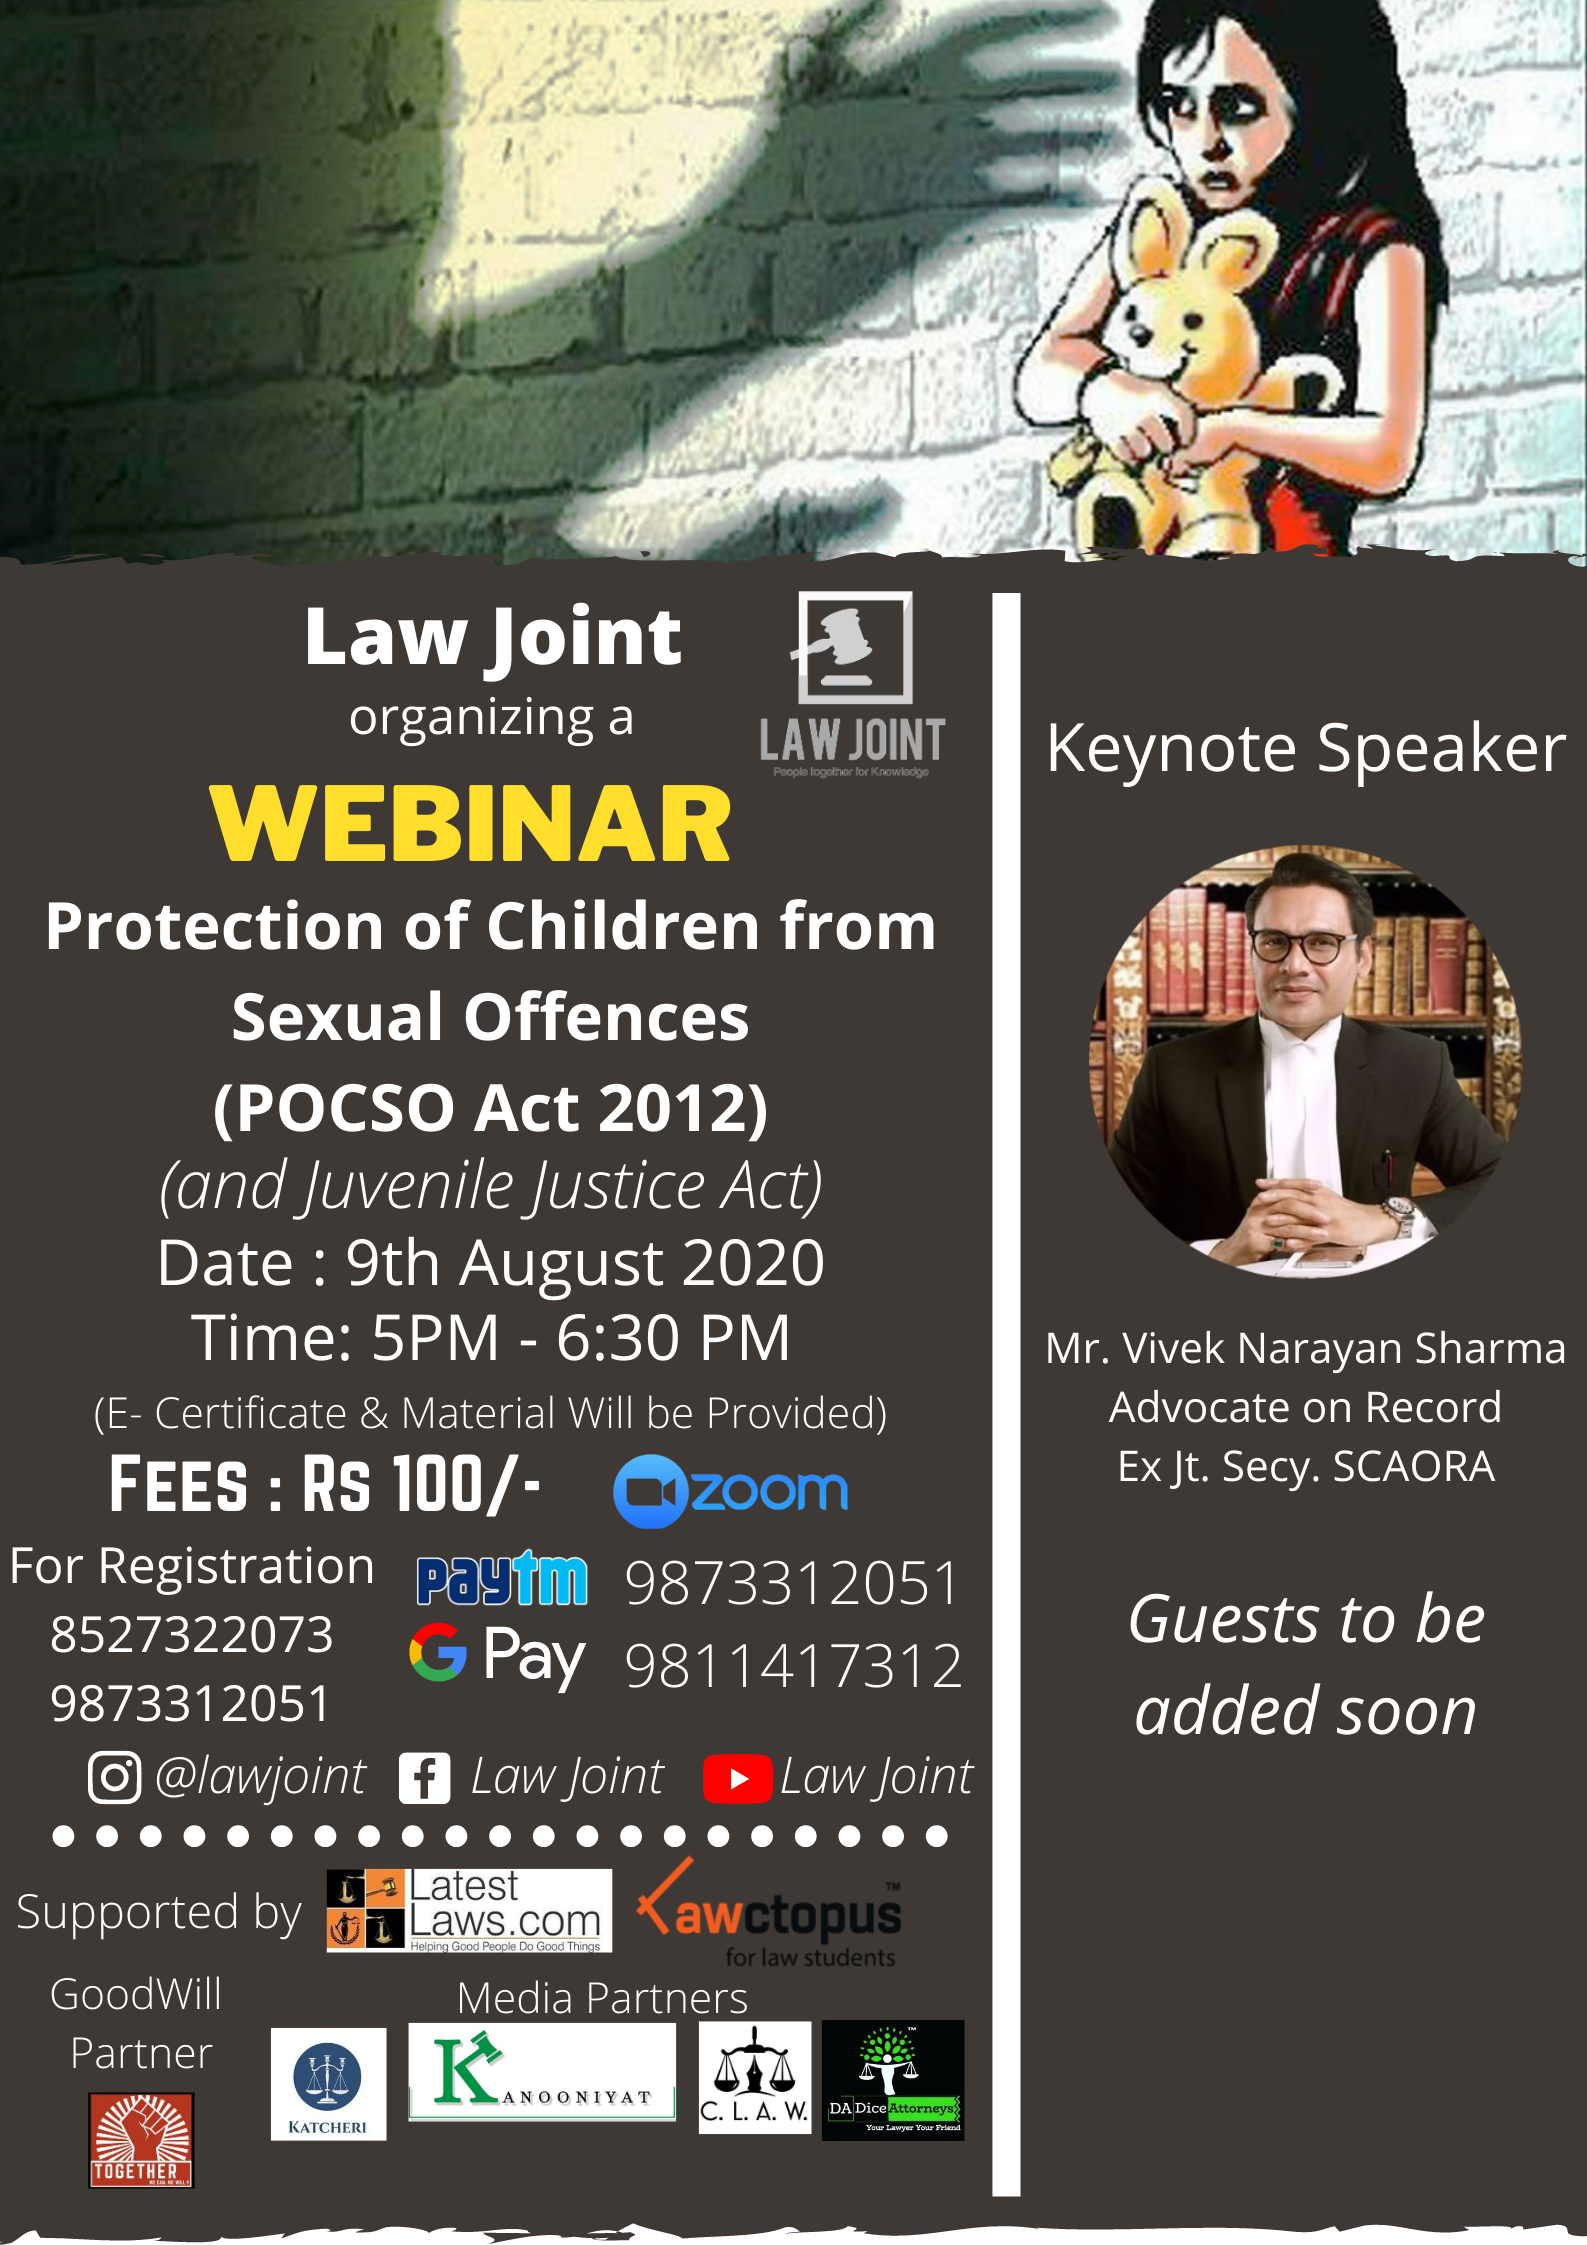 Law Joint's Webinar on POCSO Act 2012 & Juvenile Justice Act